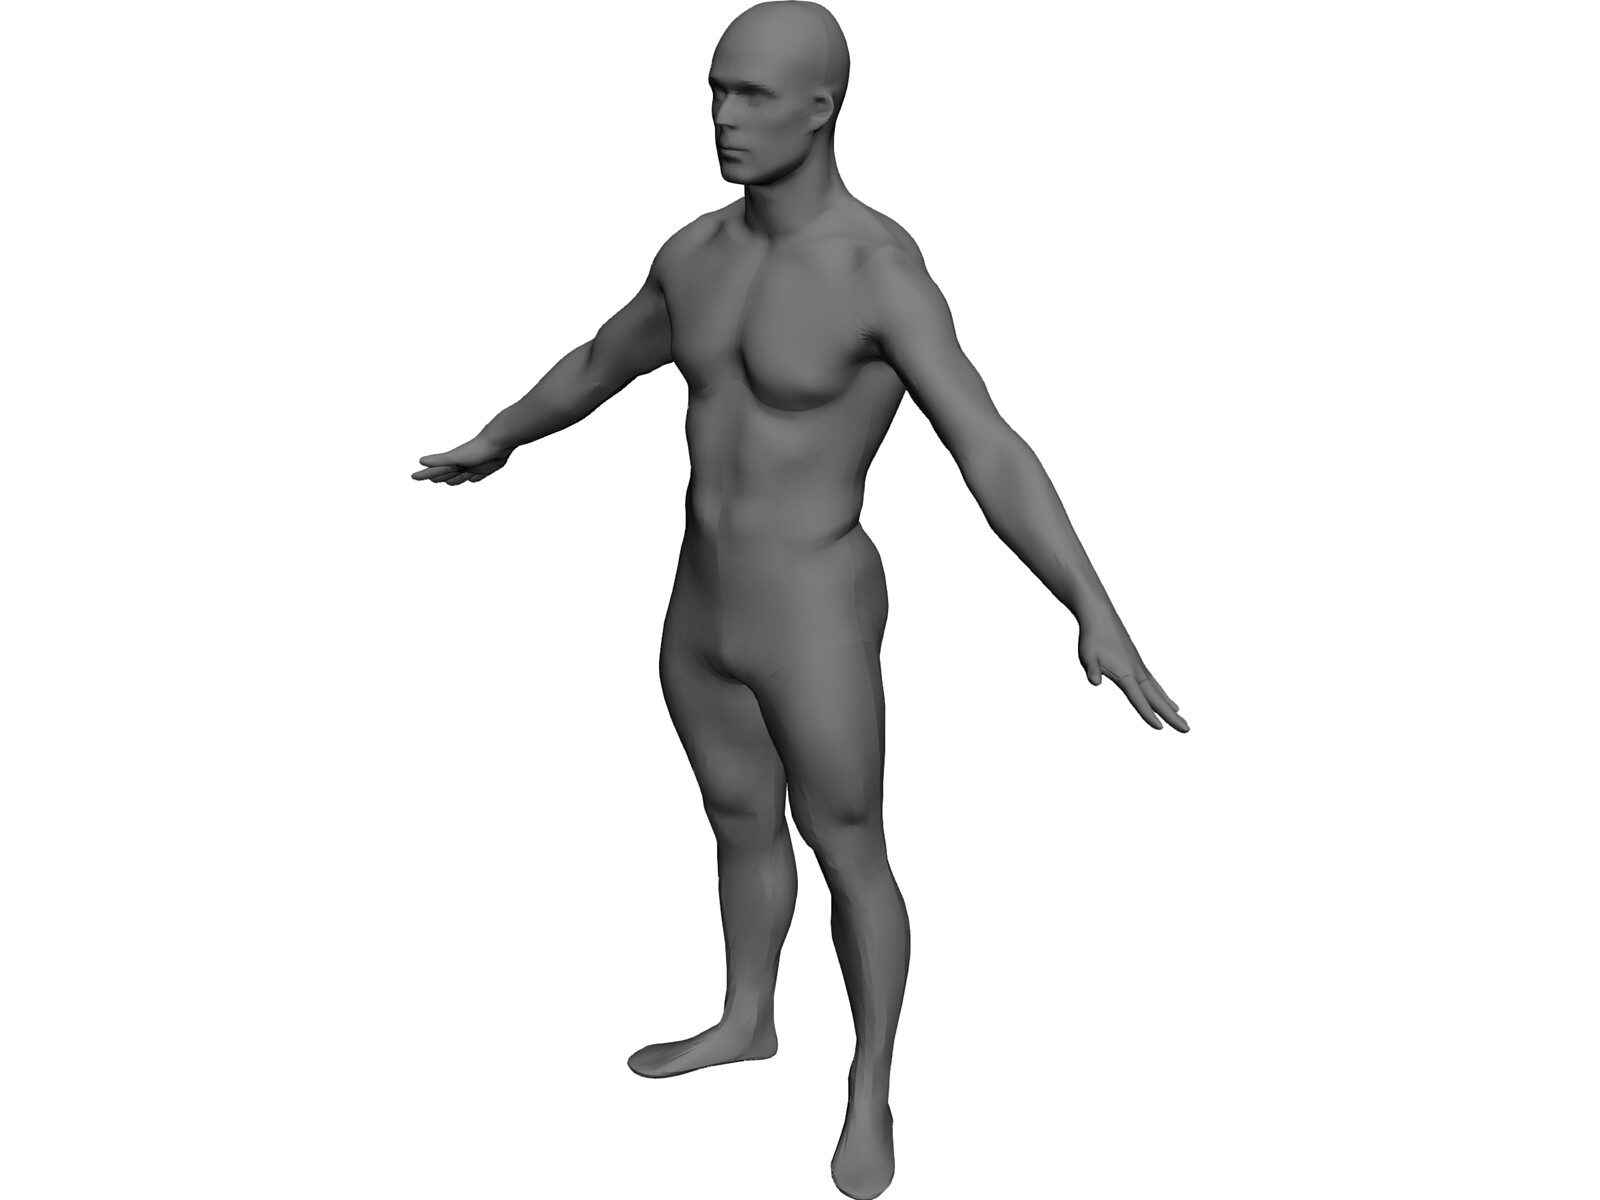 Man European 3D CAD Model